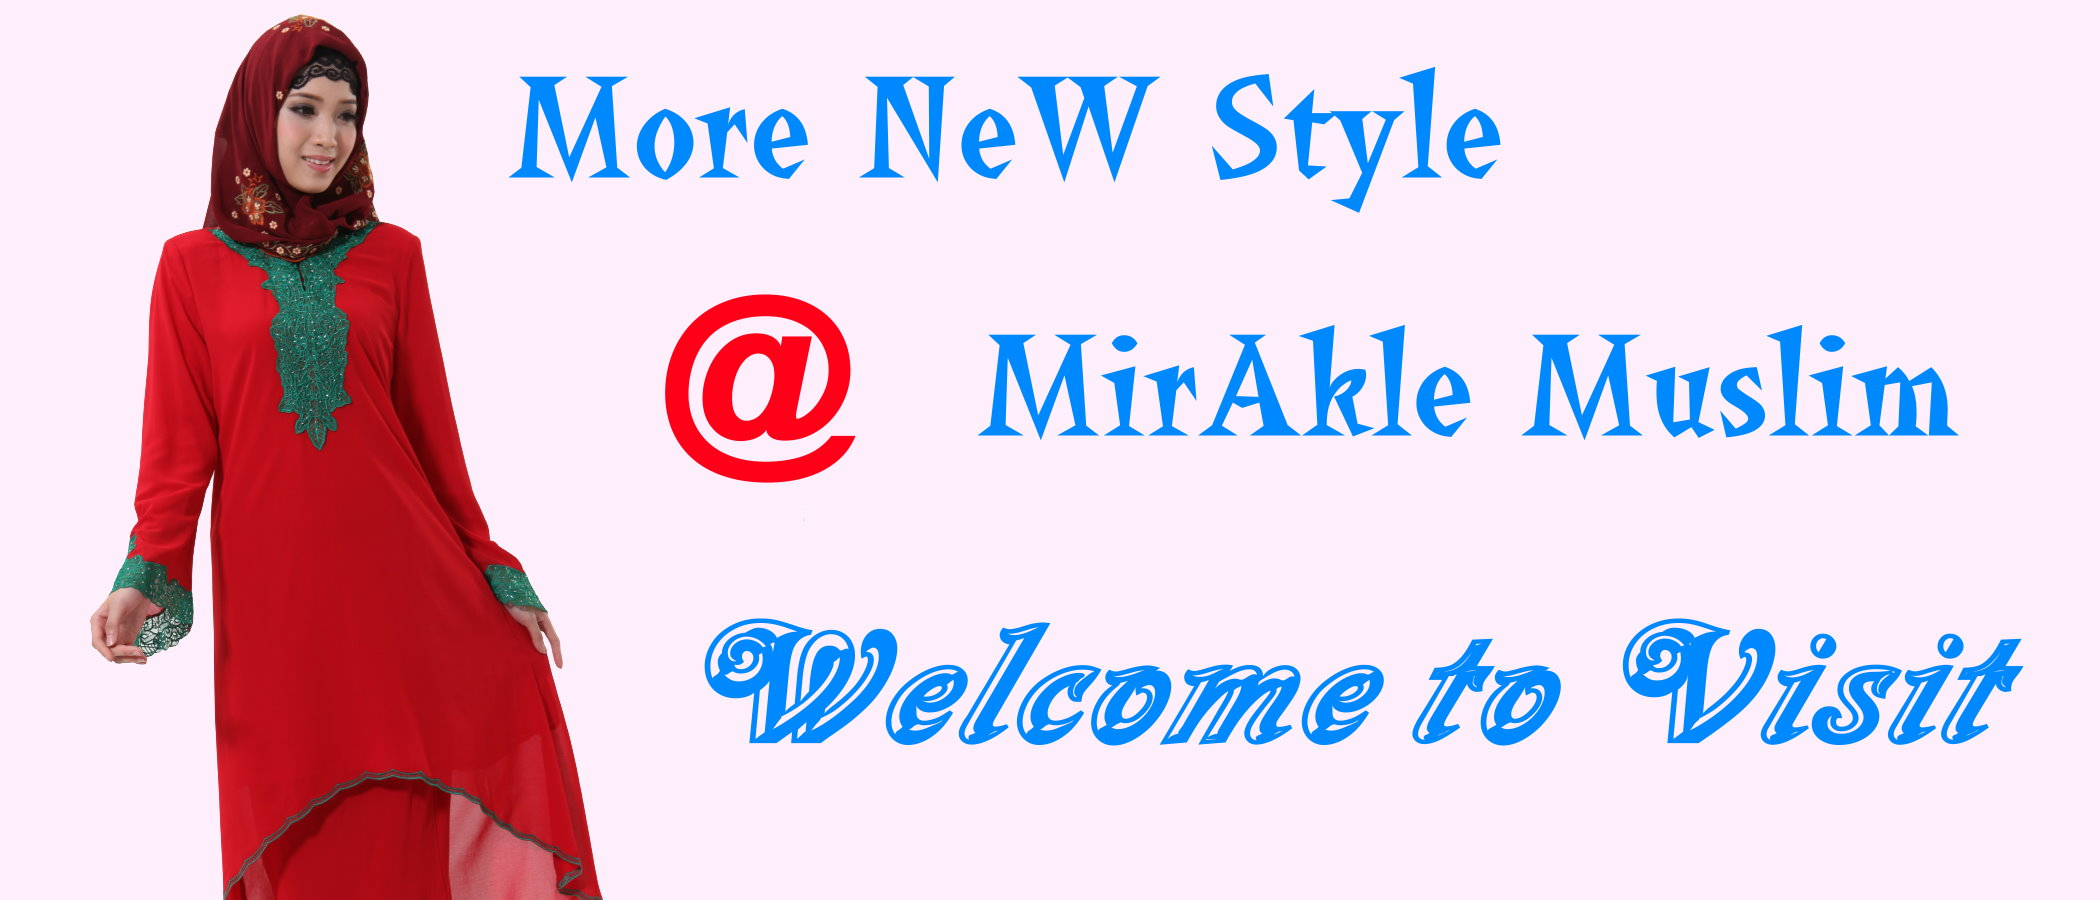 Mirakle muslim clothing factory Main Image